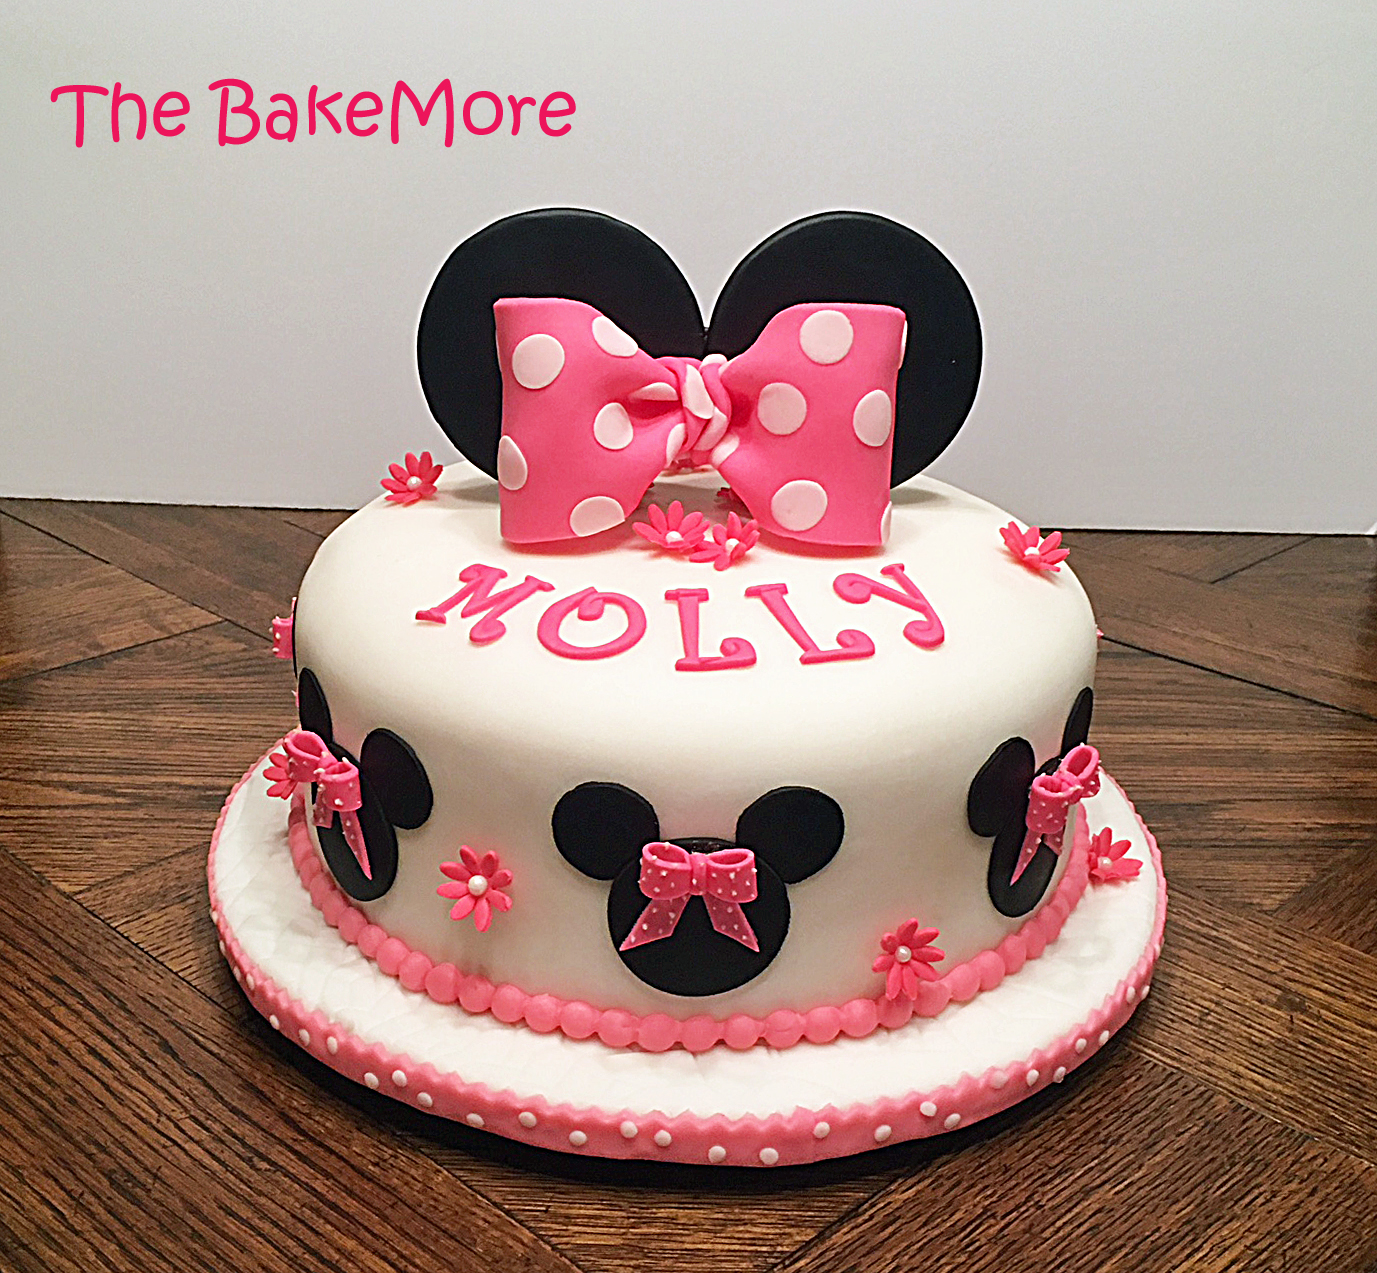 Phenomenal The Bake More Easy Minnie Mouse Cake Just Ears And Bows Funny Birthday Cards Online Alyptdamsfinfo